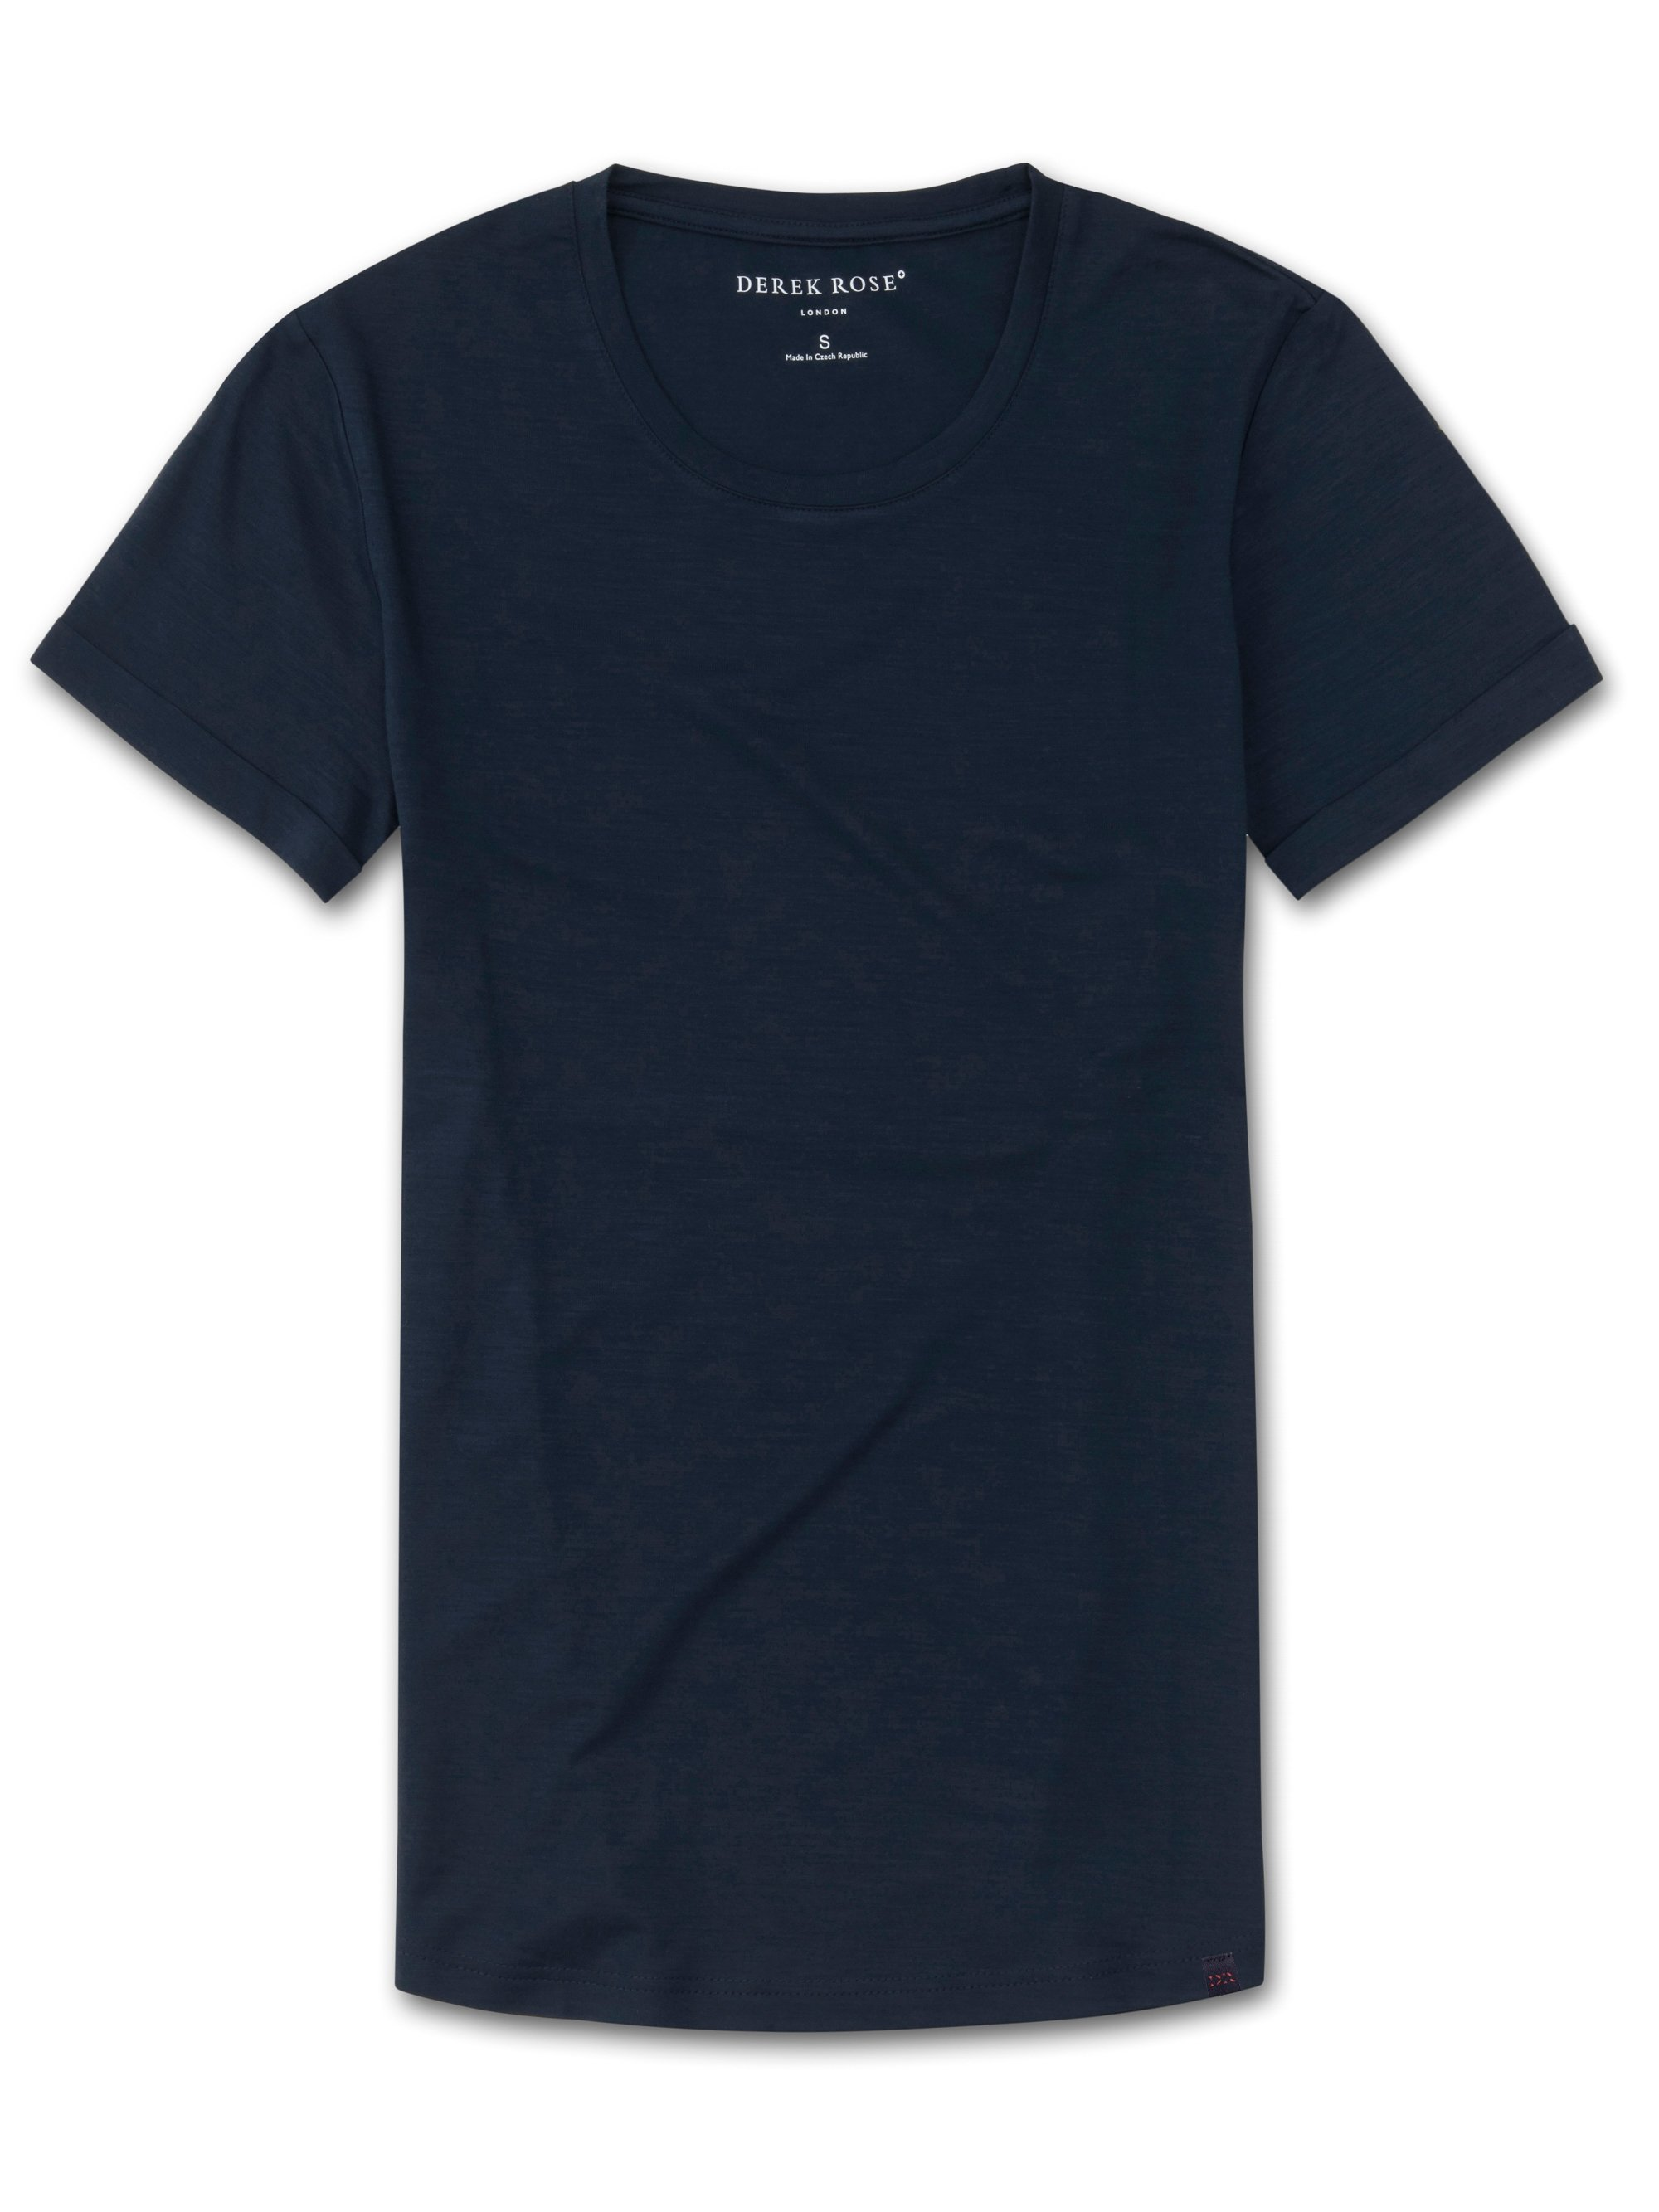 Women's Leisure T-Shirt Lara Micro Modal Stretch Navy